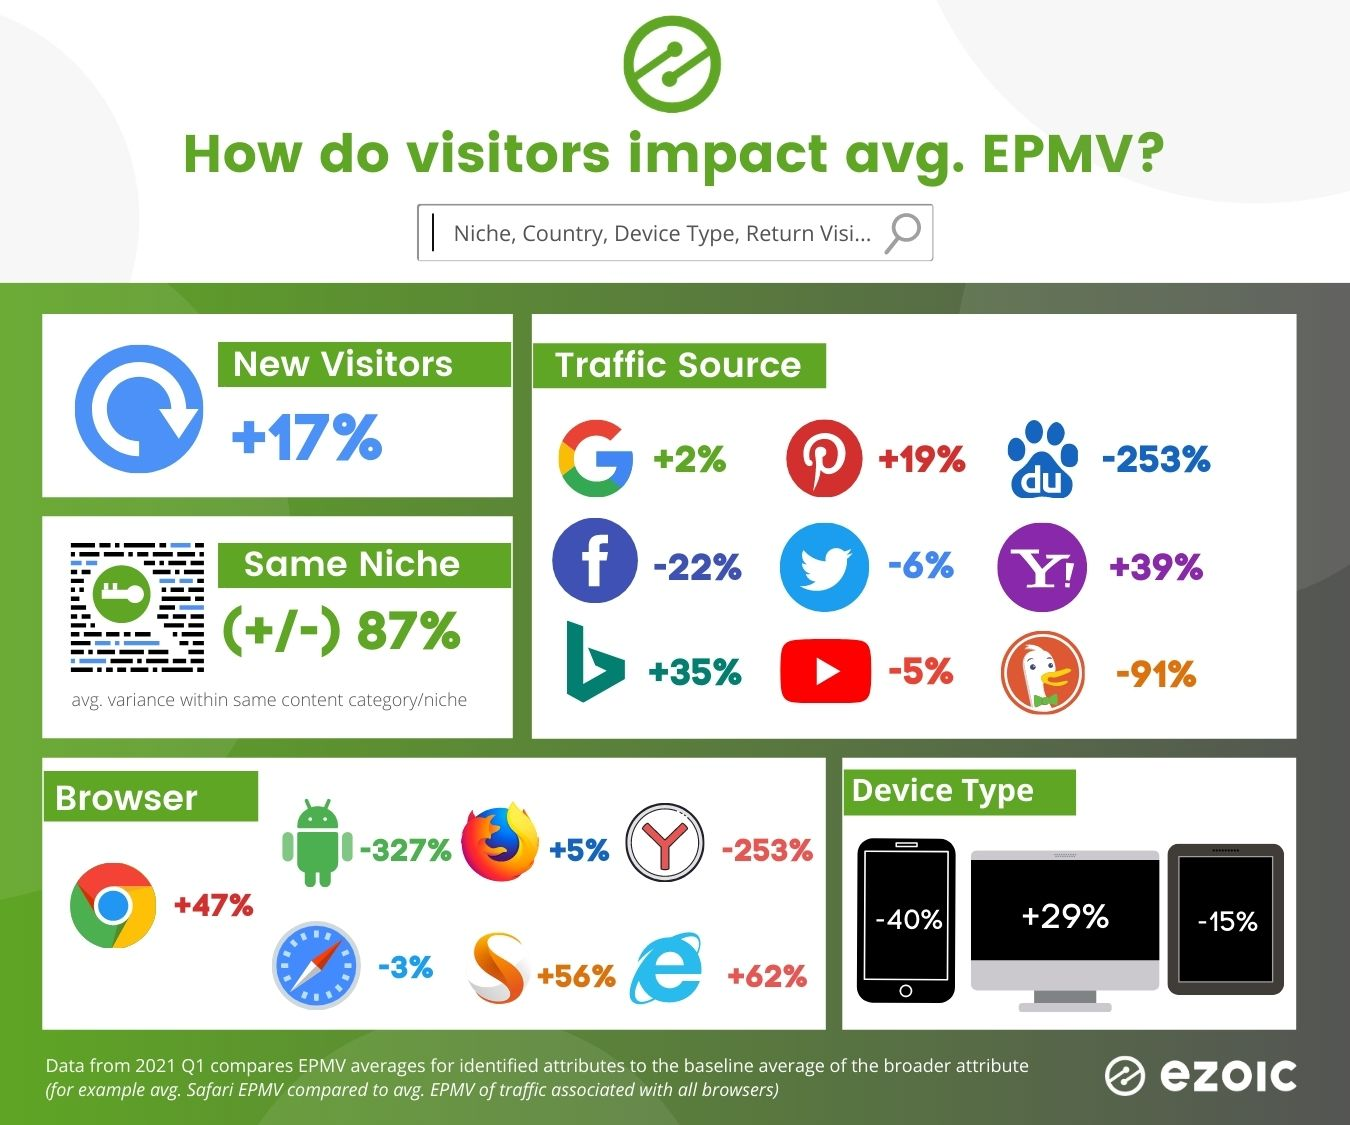 average epmv by browser, niche, content, and traffic source - ezoic